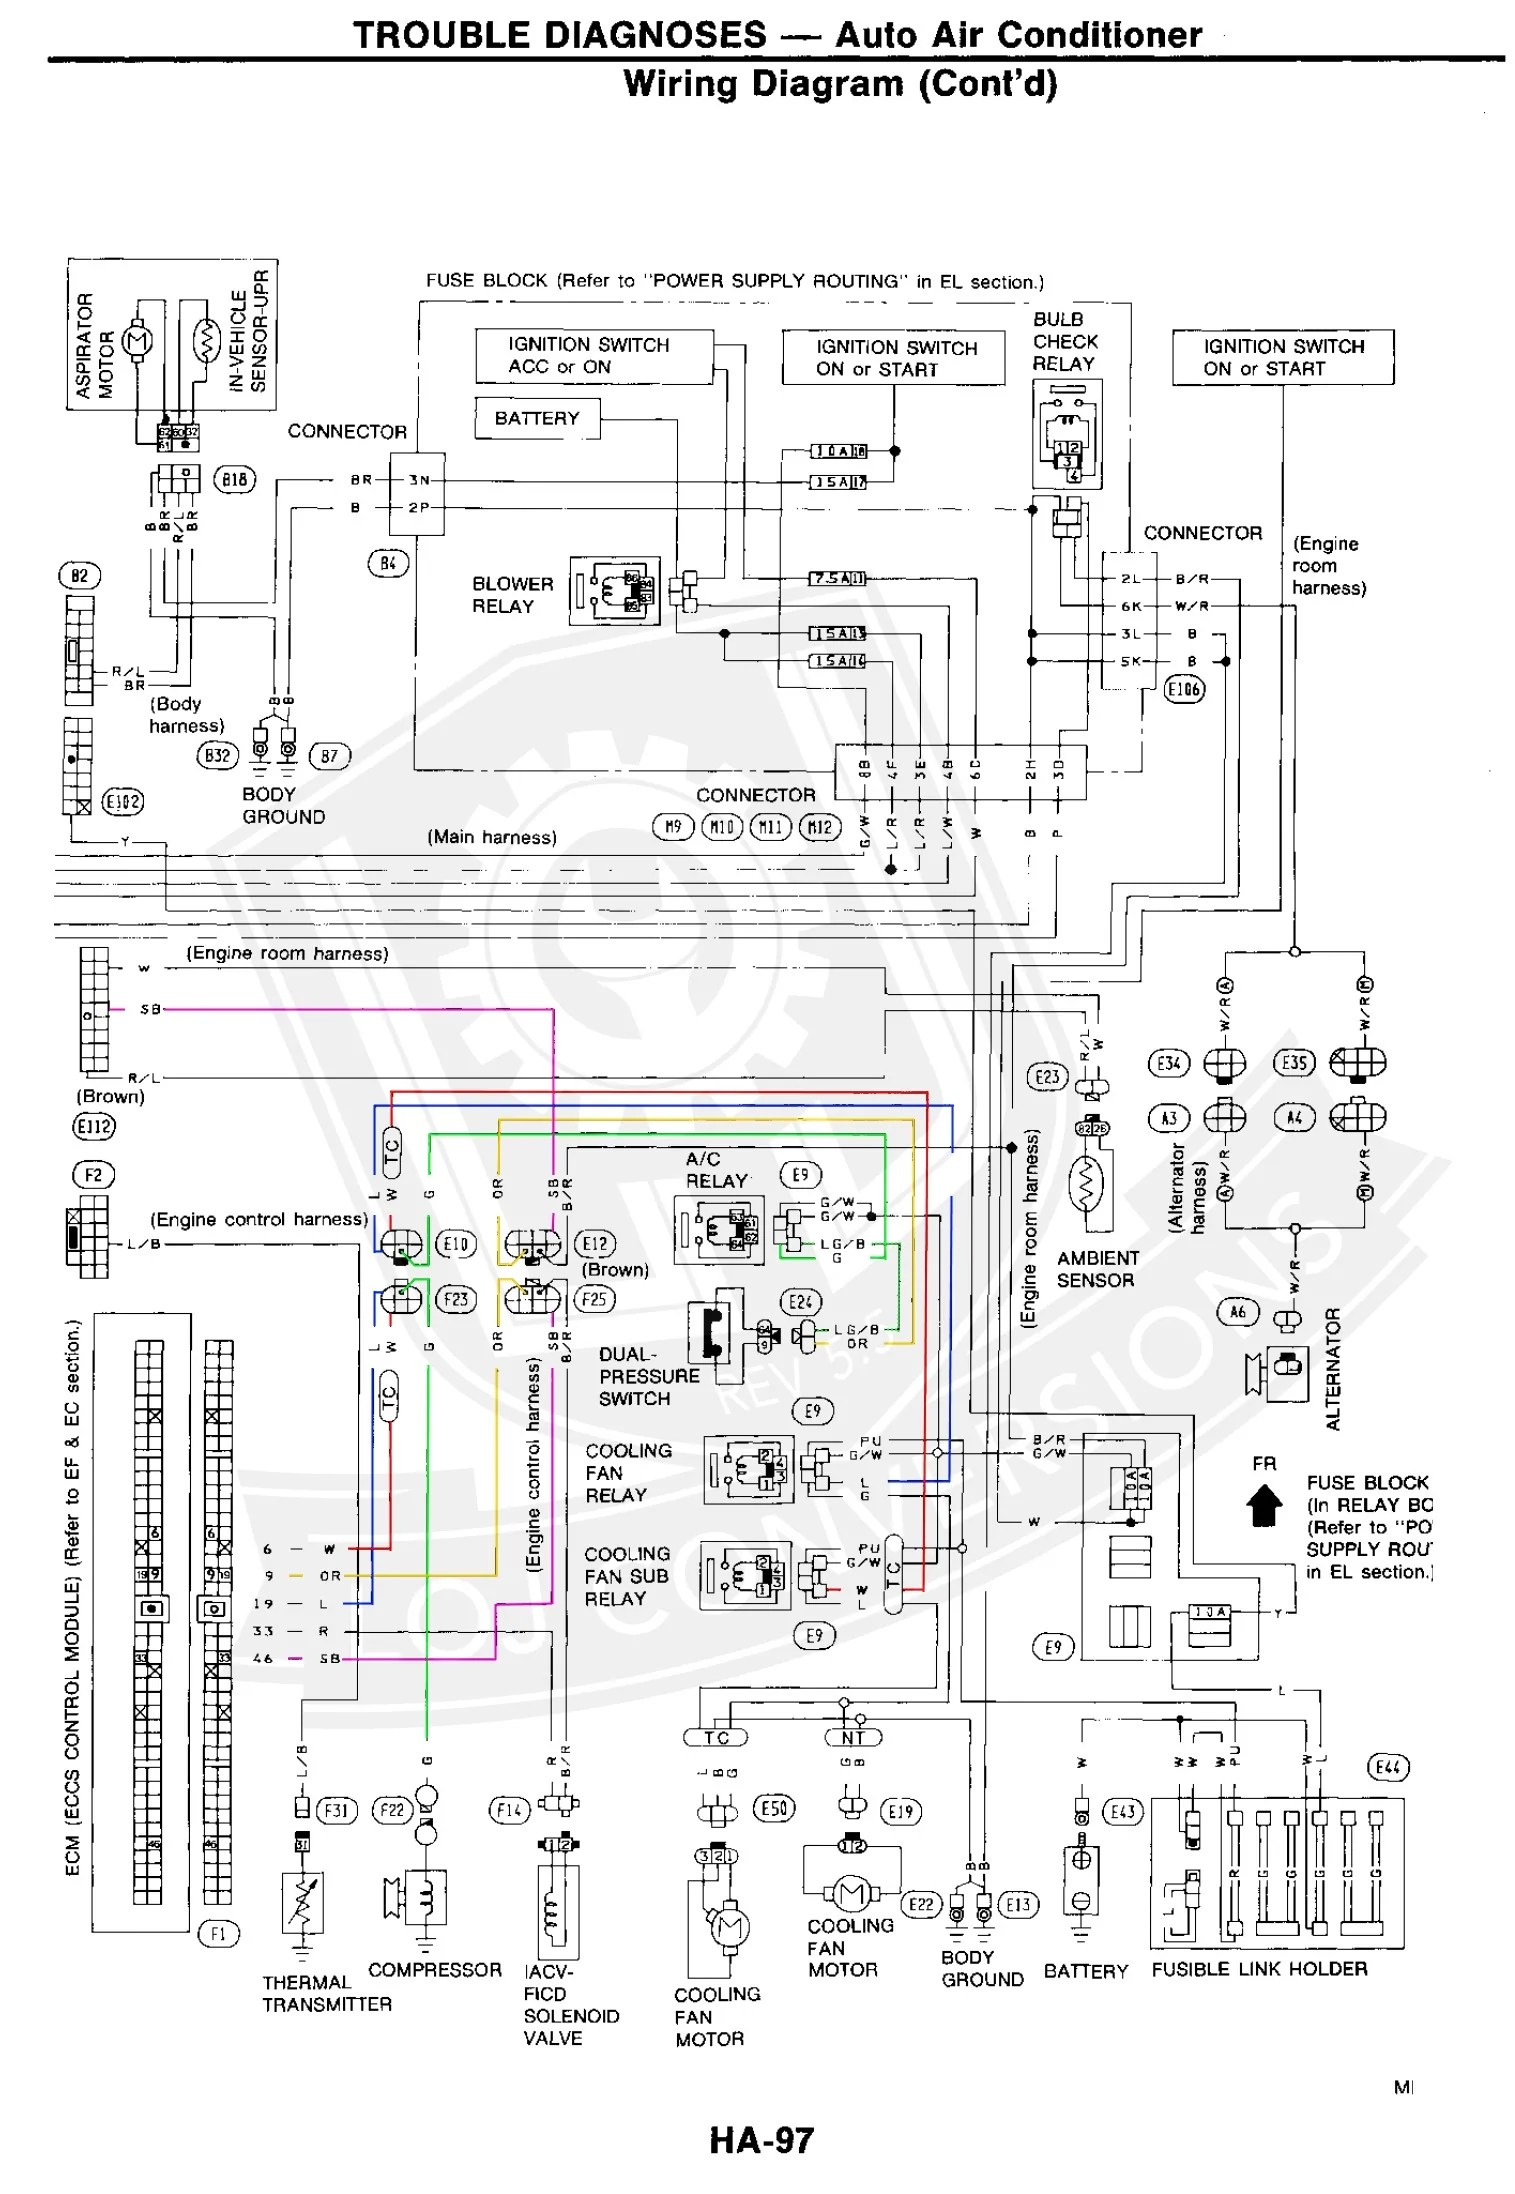 hight resolution of 300zx wire diagram wiring diagram source pioneer harness diagram 300zx wire harness diagram